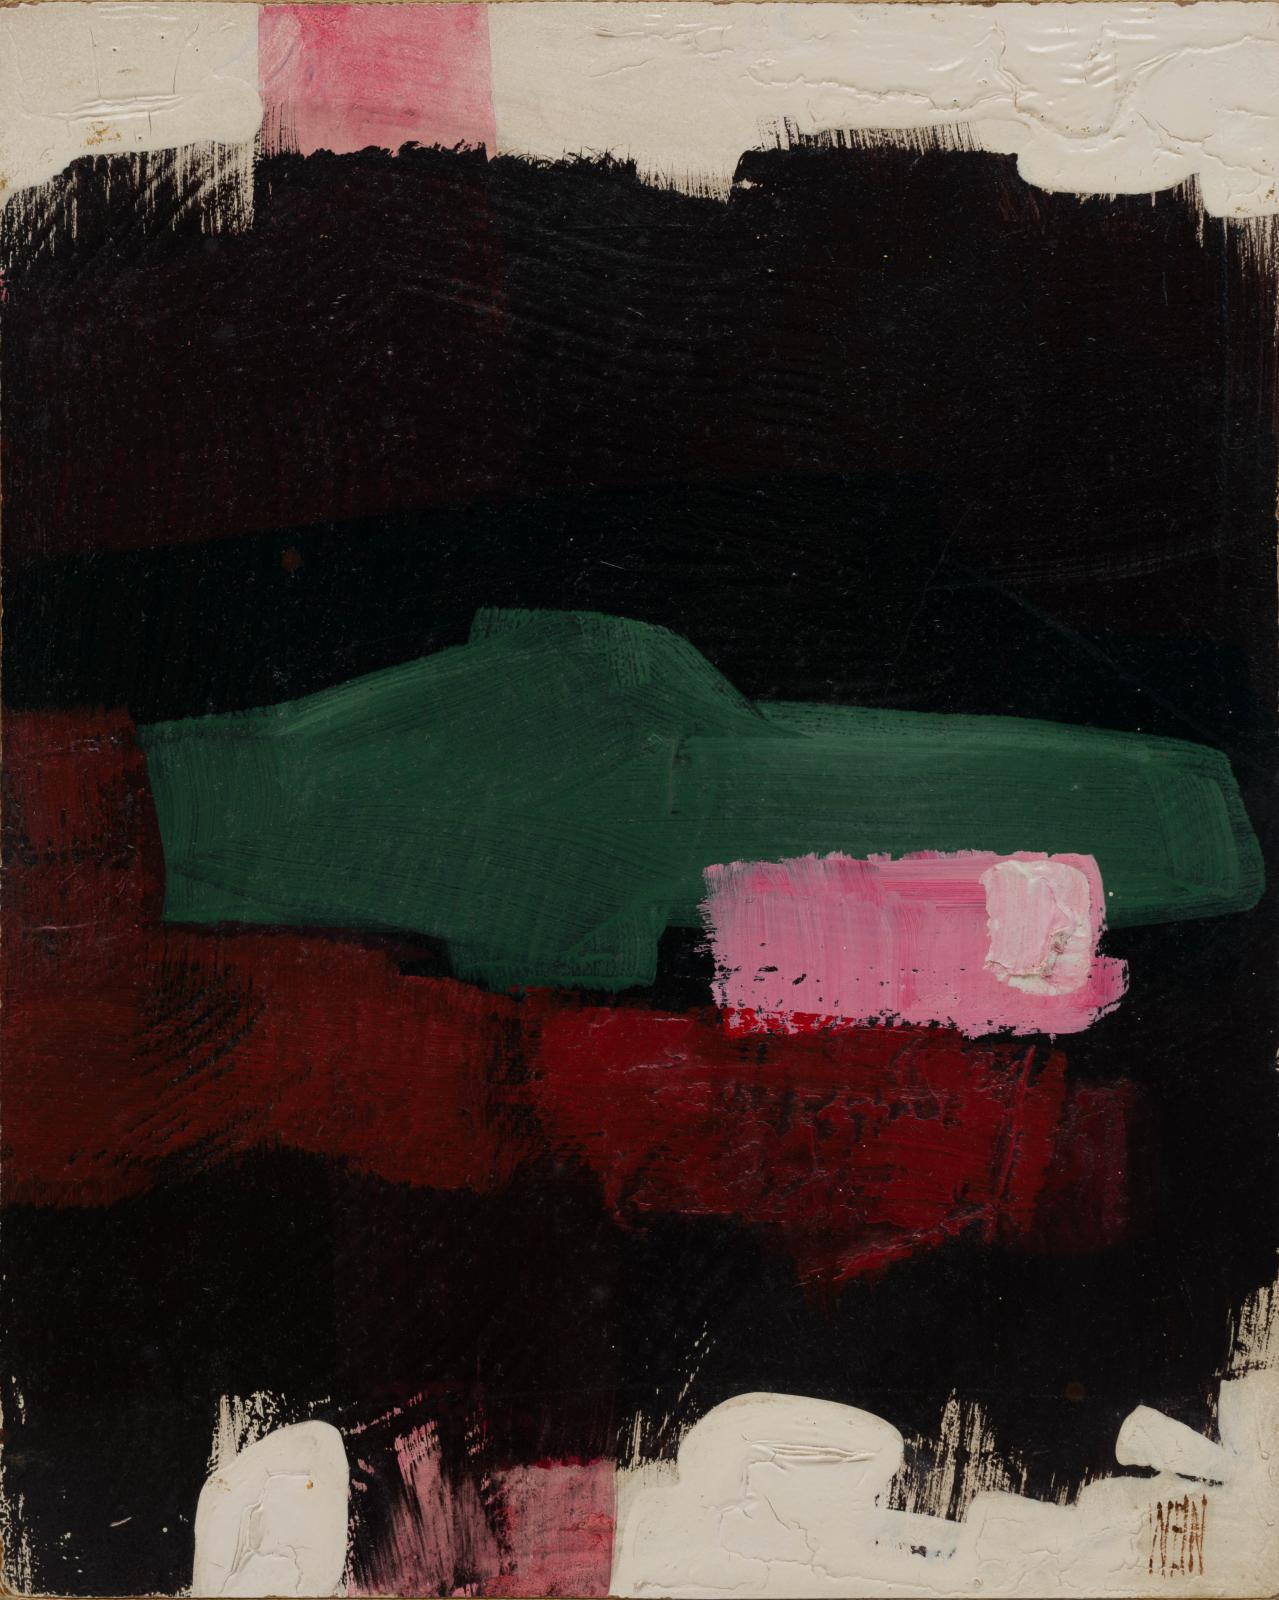 An abstract painting with rough geometric shapes in black green pink and red